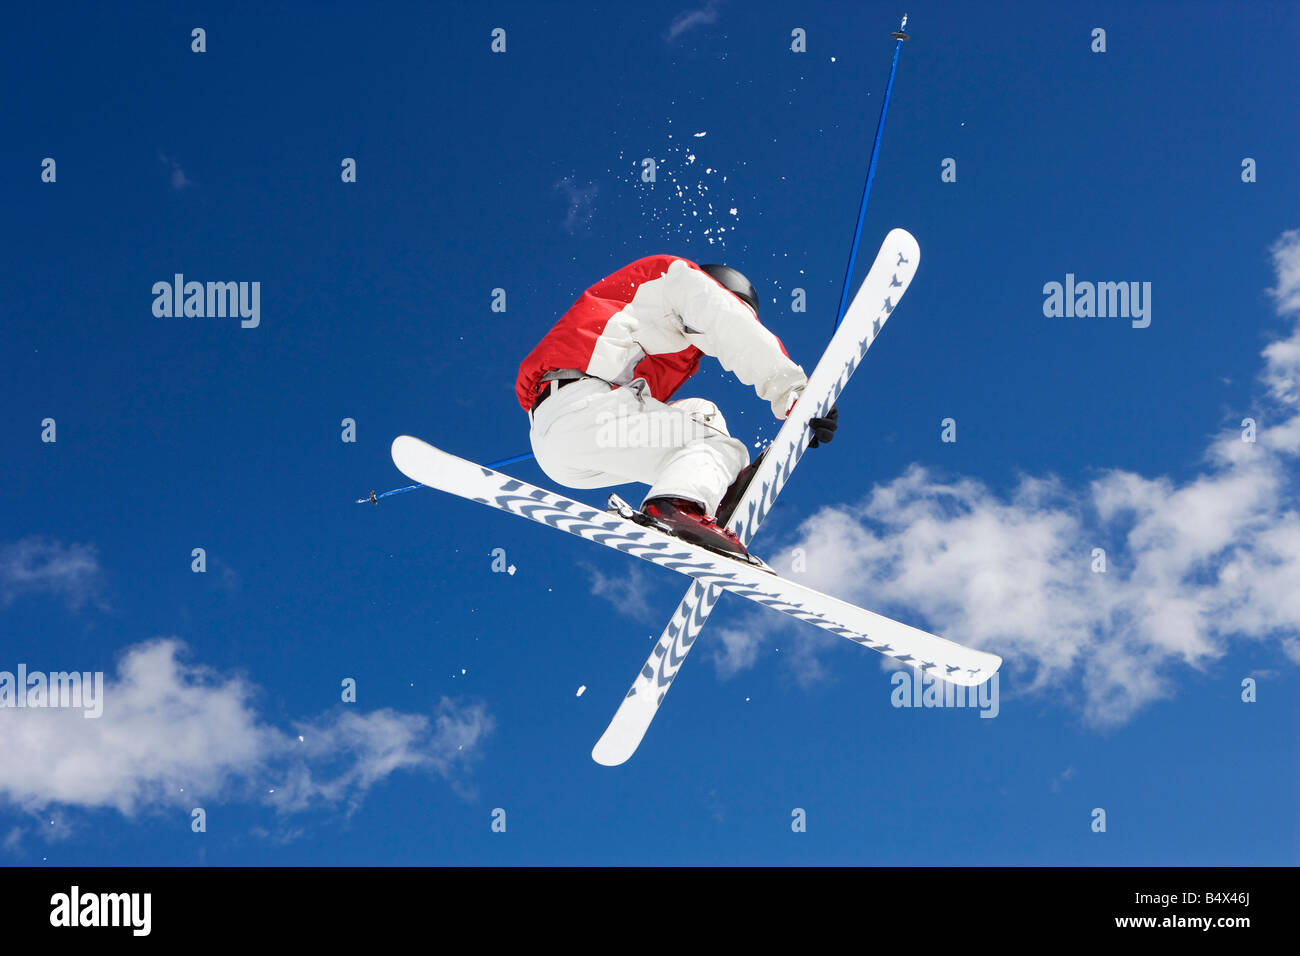 Skier performing jumping trick - Stock Image